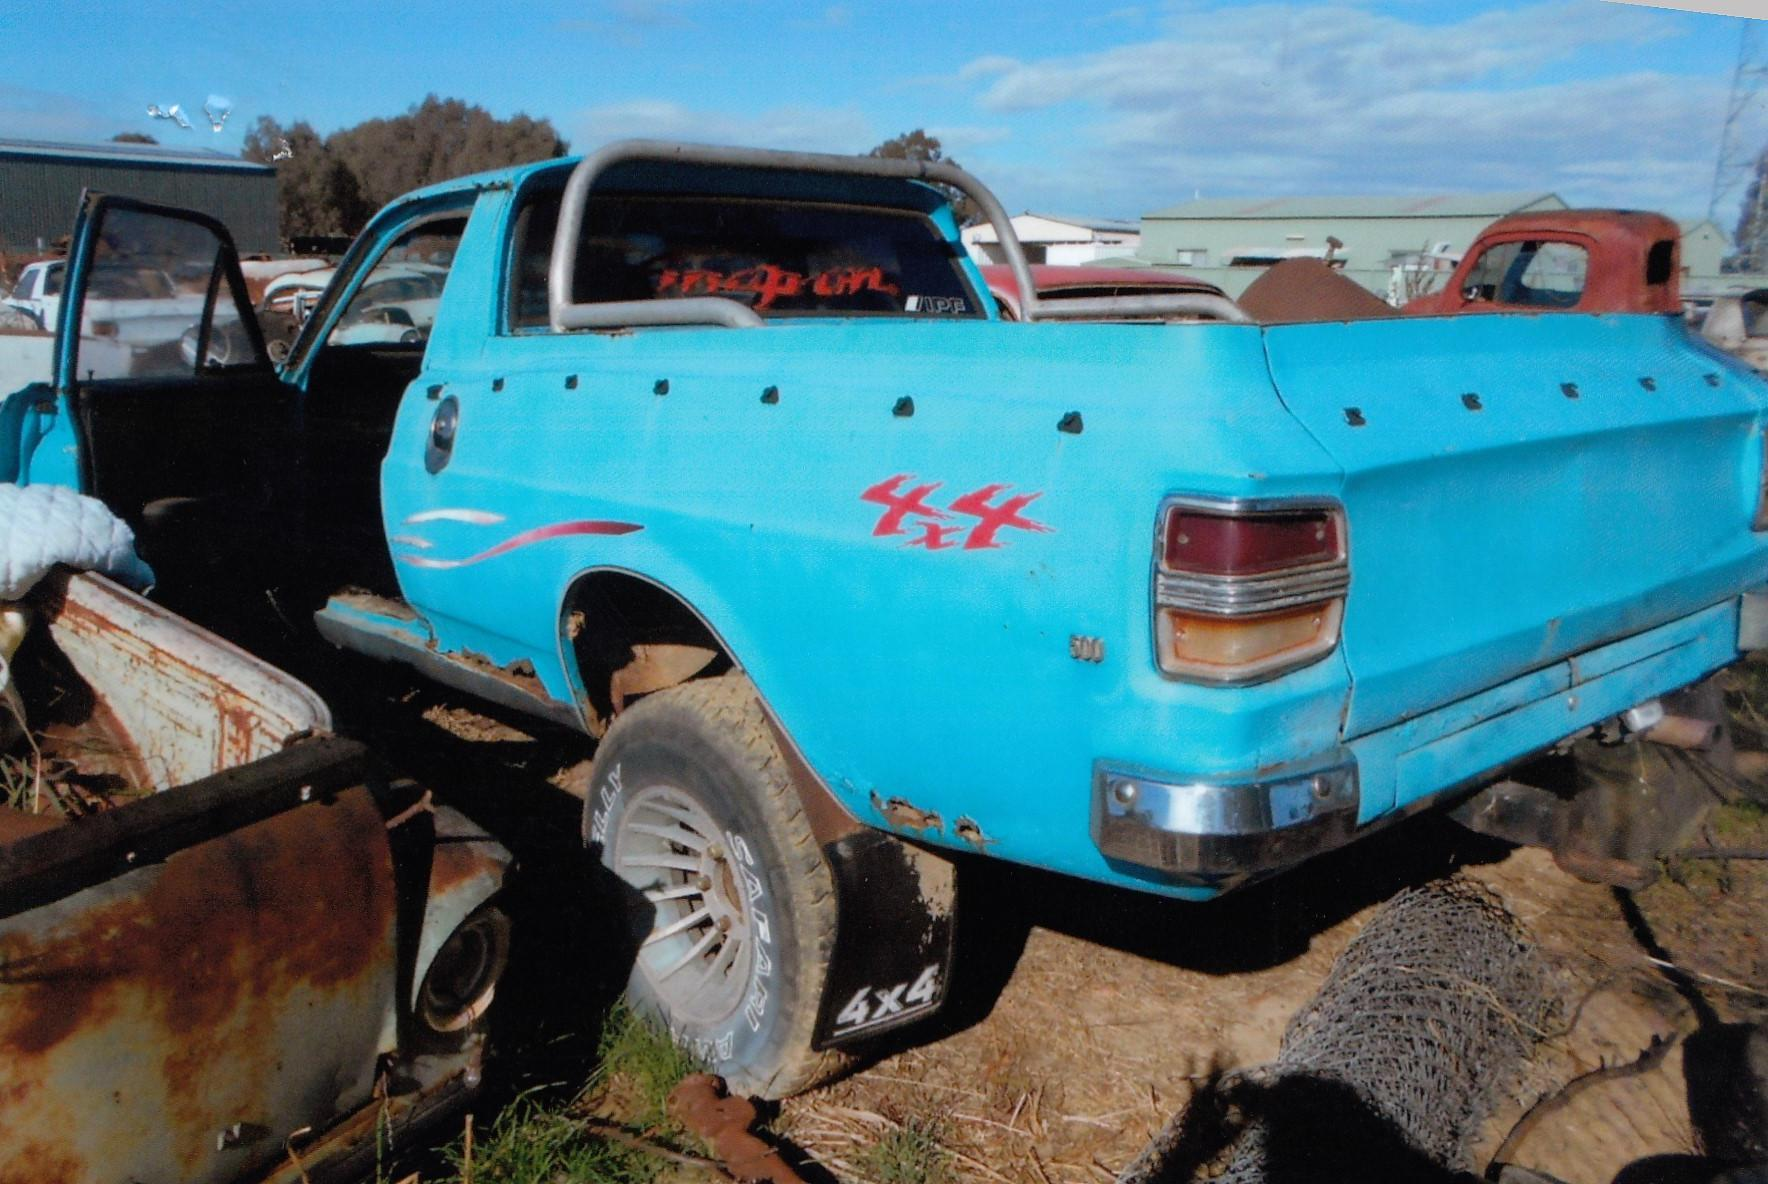 1972 Ford Falcon Xy 4x4 Ute Jcm4030243 Pagespeed Noscript Just Cars